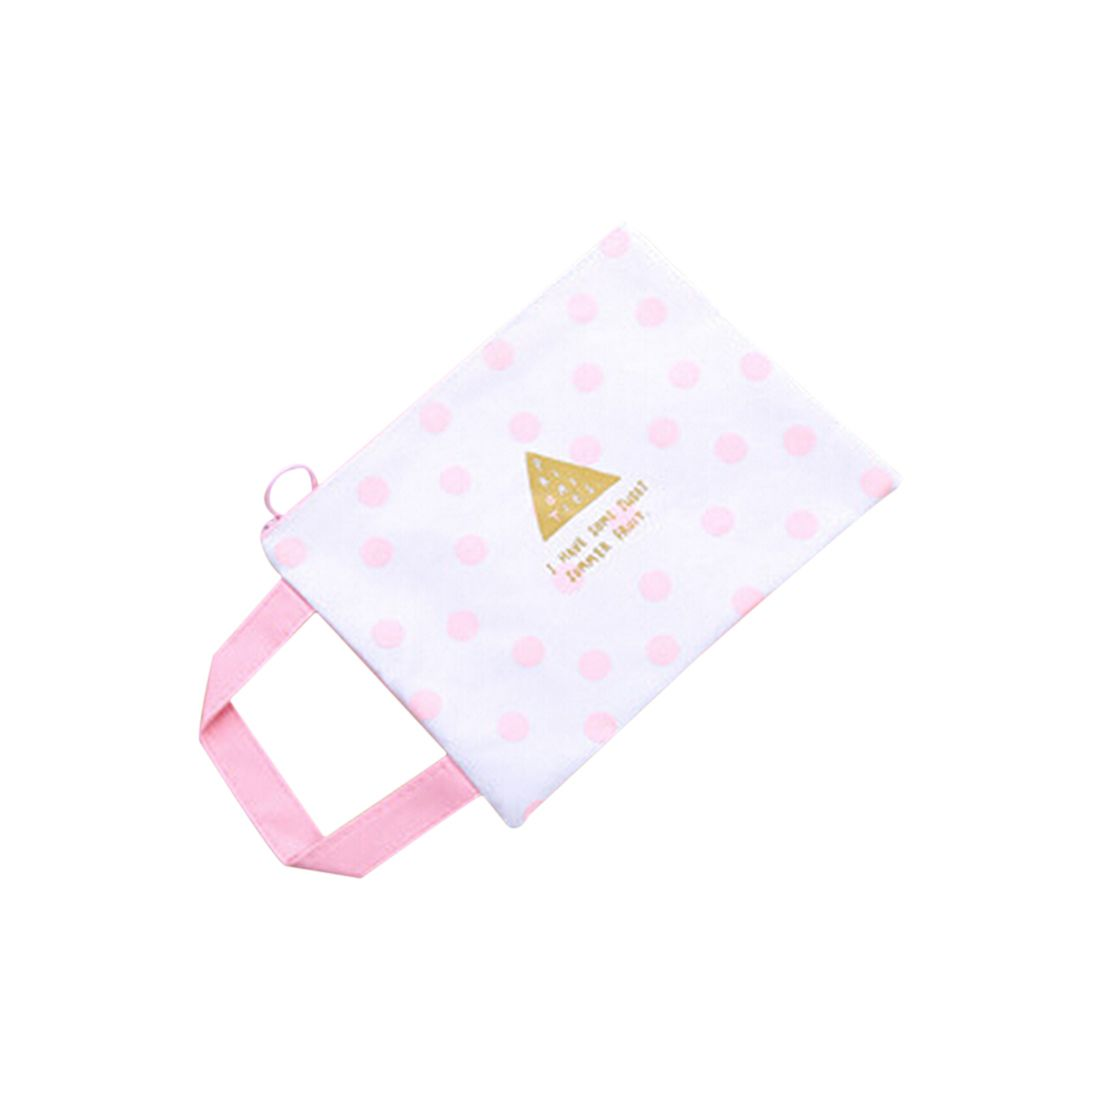 A4 Cartoon Pink Mesh File Folder Document Filing Bag Stationery Business Gift Stationery Dots